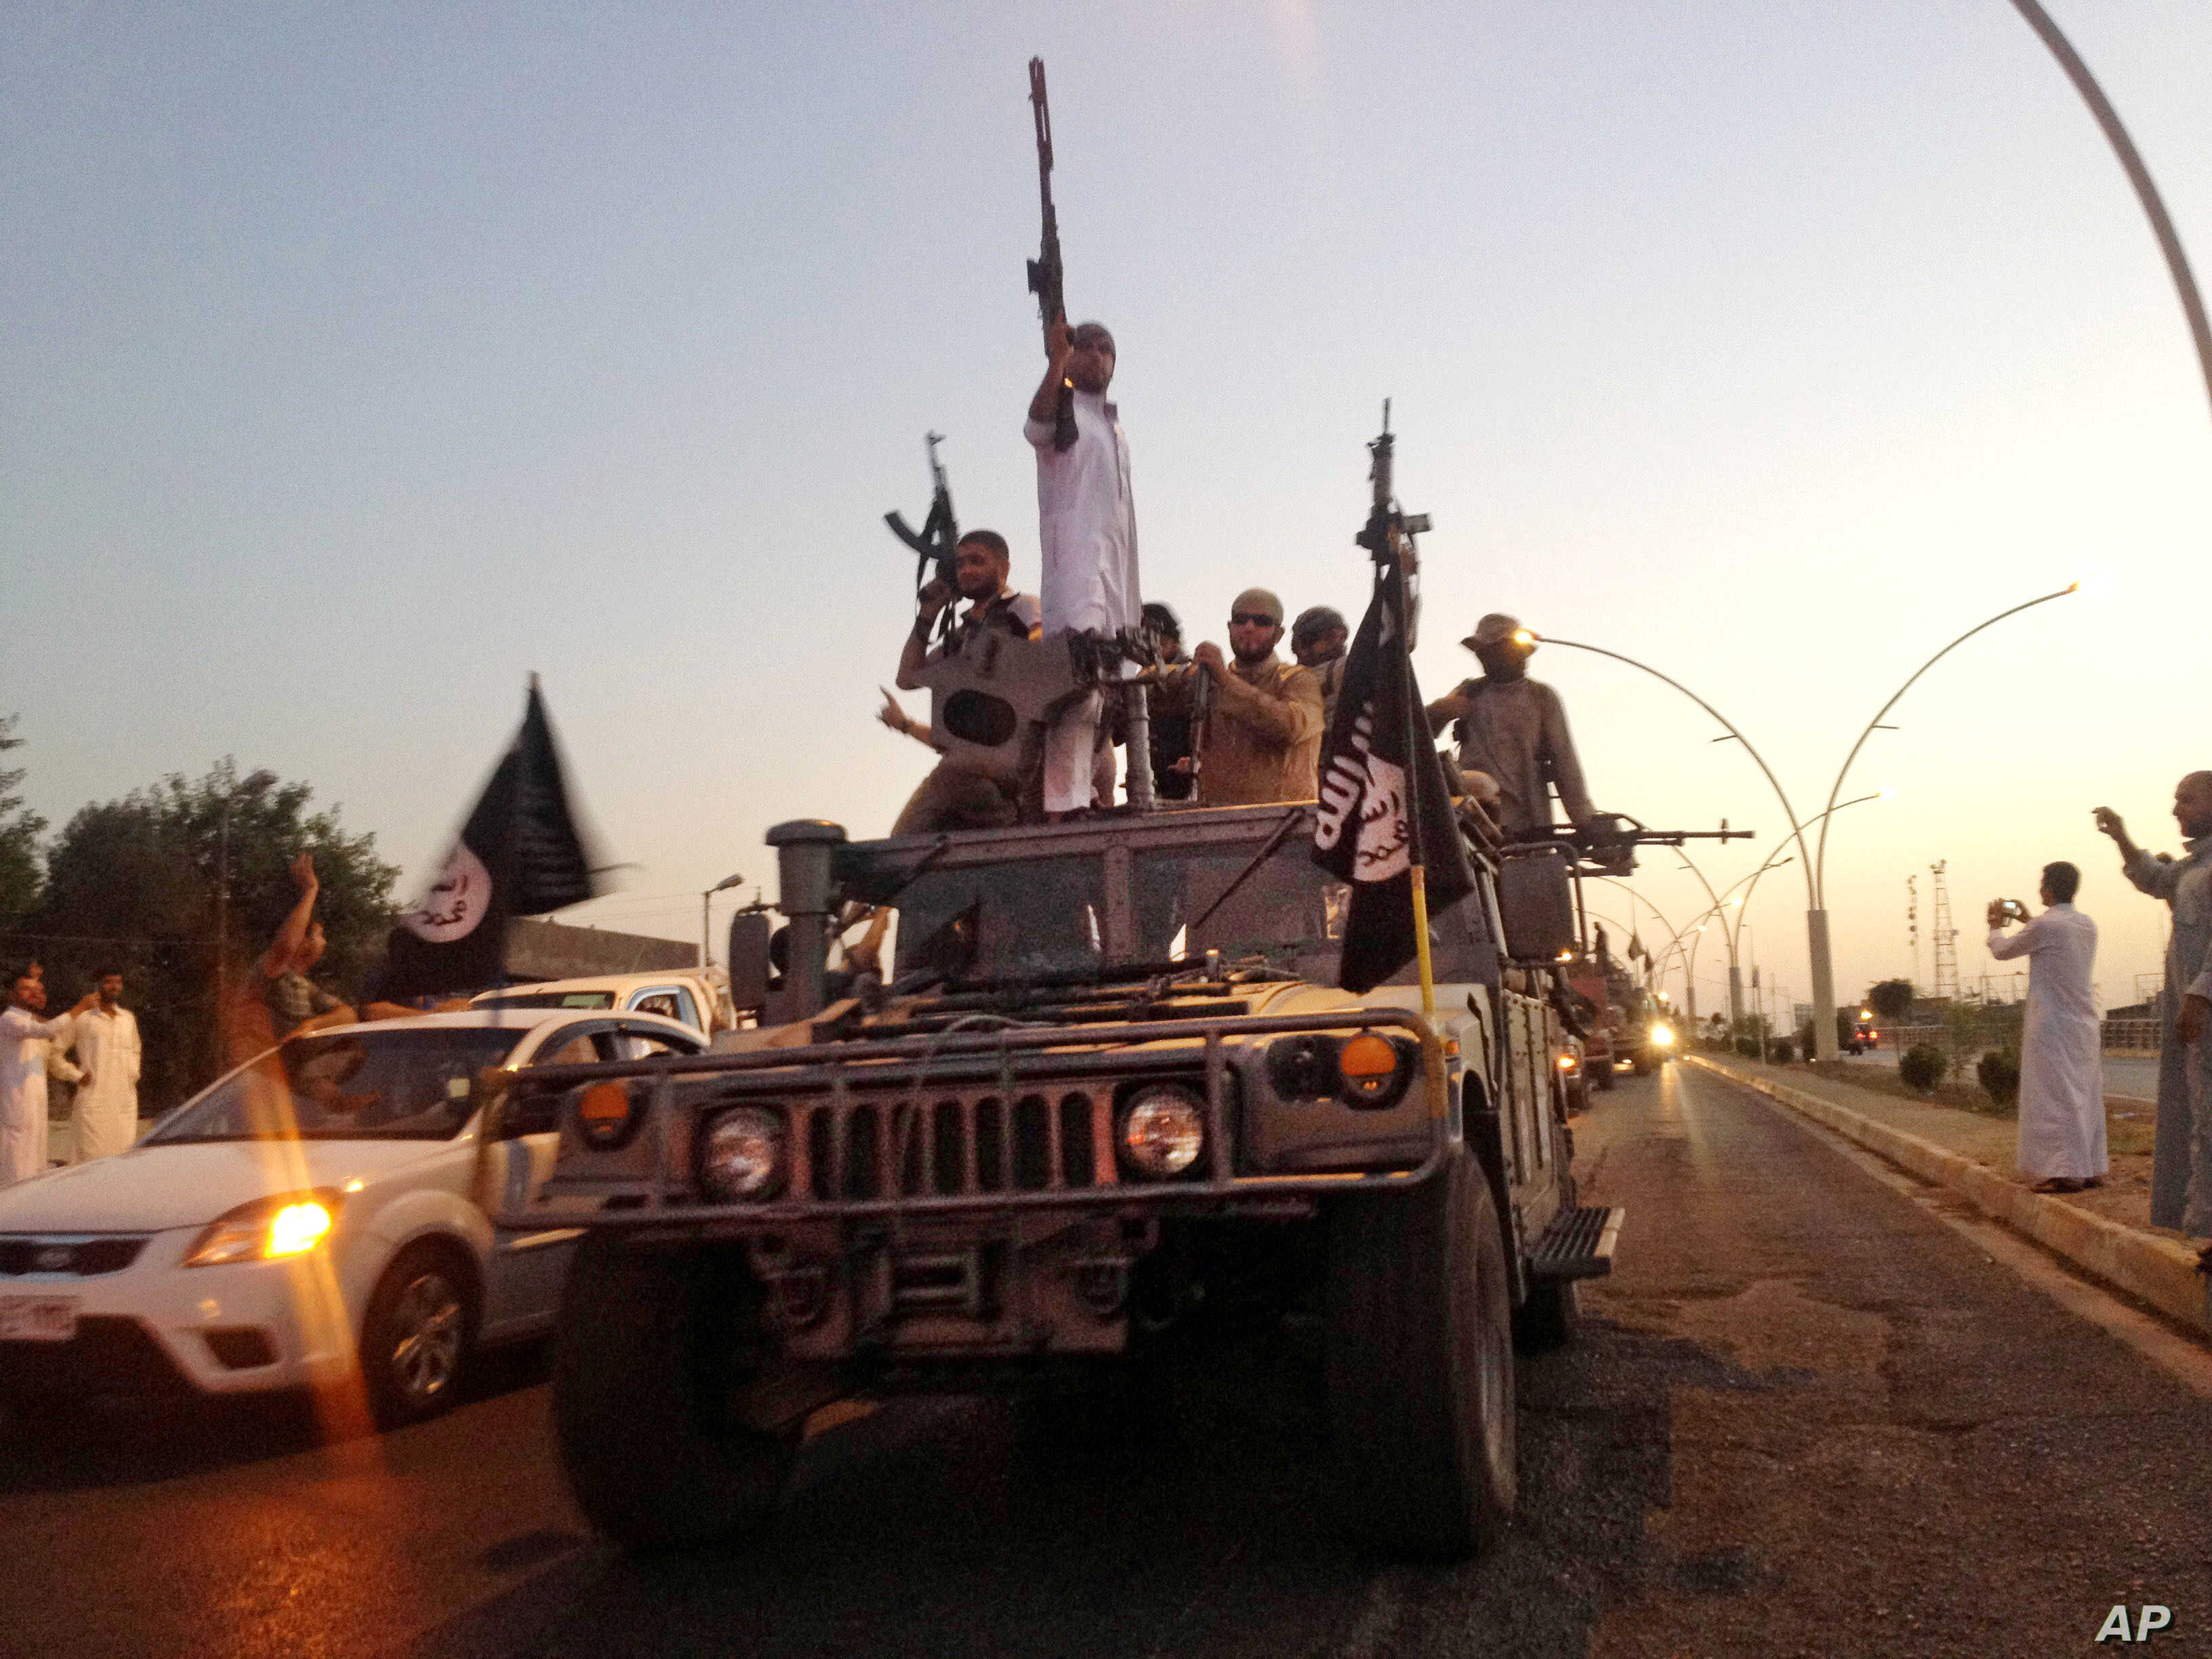 FILE - Fighters from the Islamic State group parade in a commandeered Iraqi security forces armored vehicle on the main road at the northern city of Mosul, Iraq, June 23, 2014.